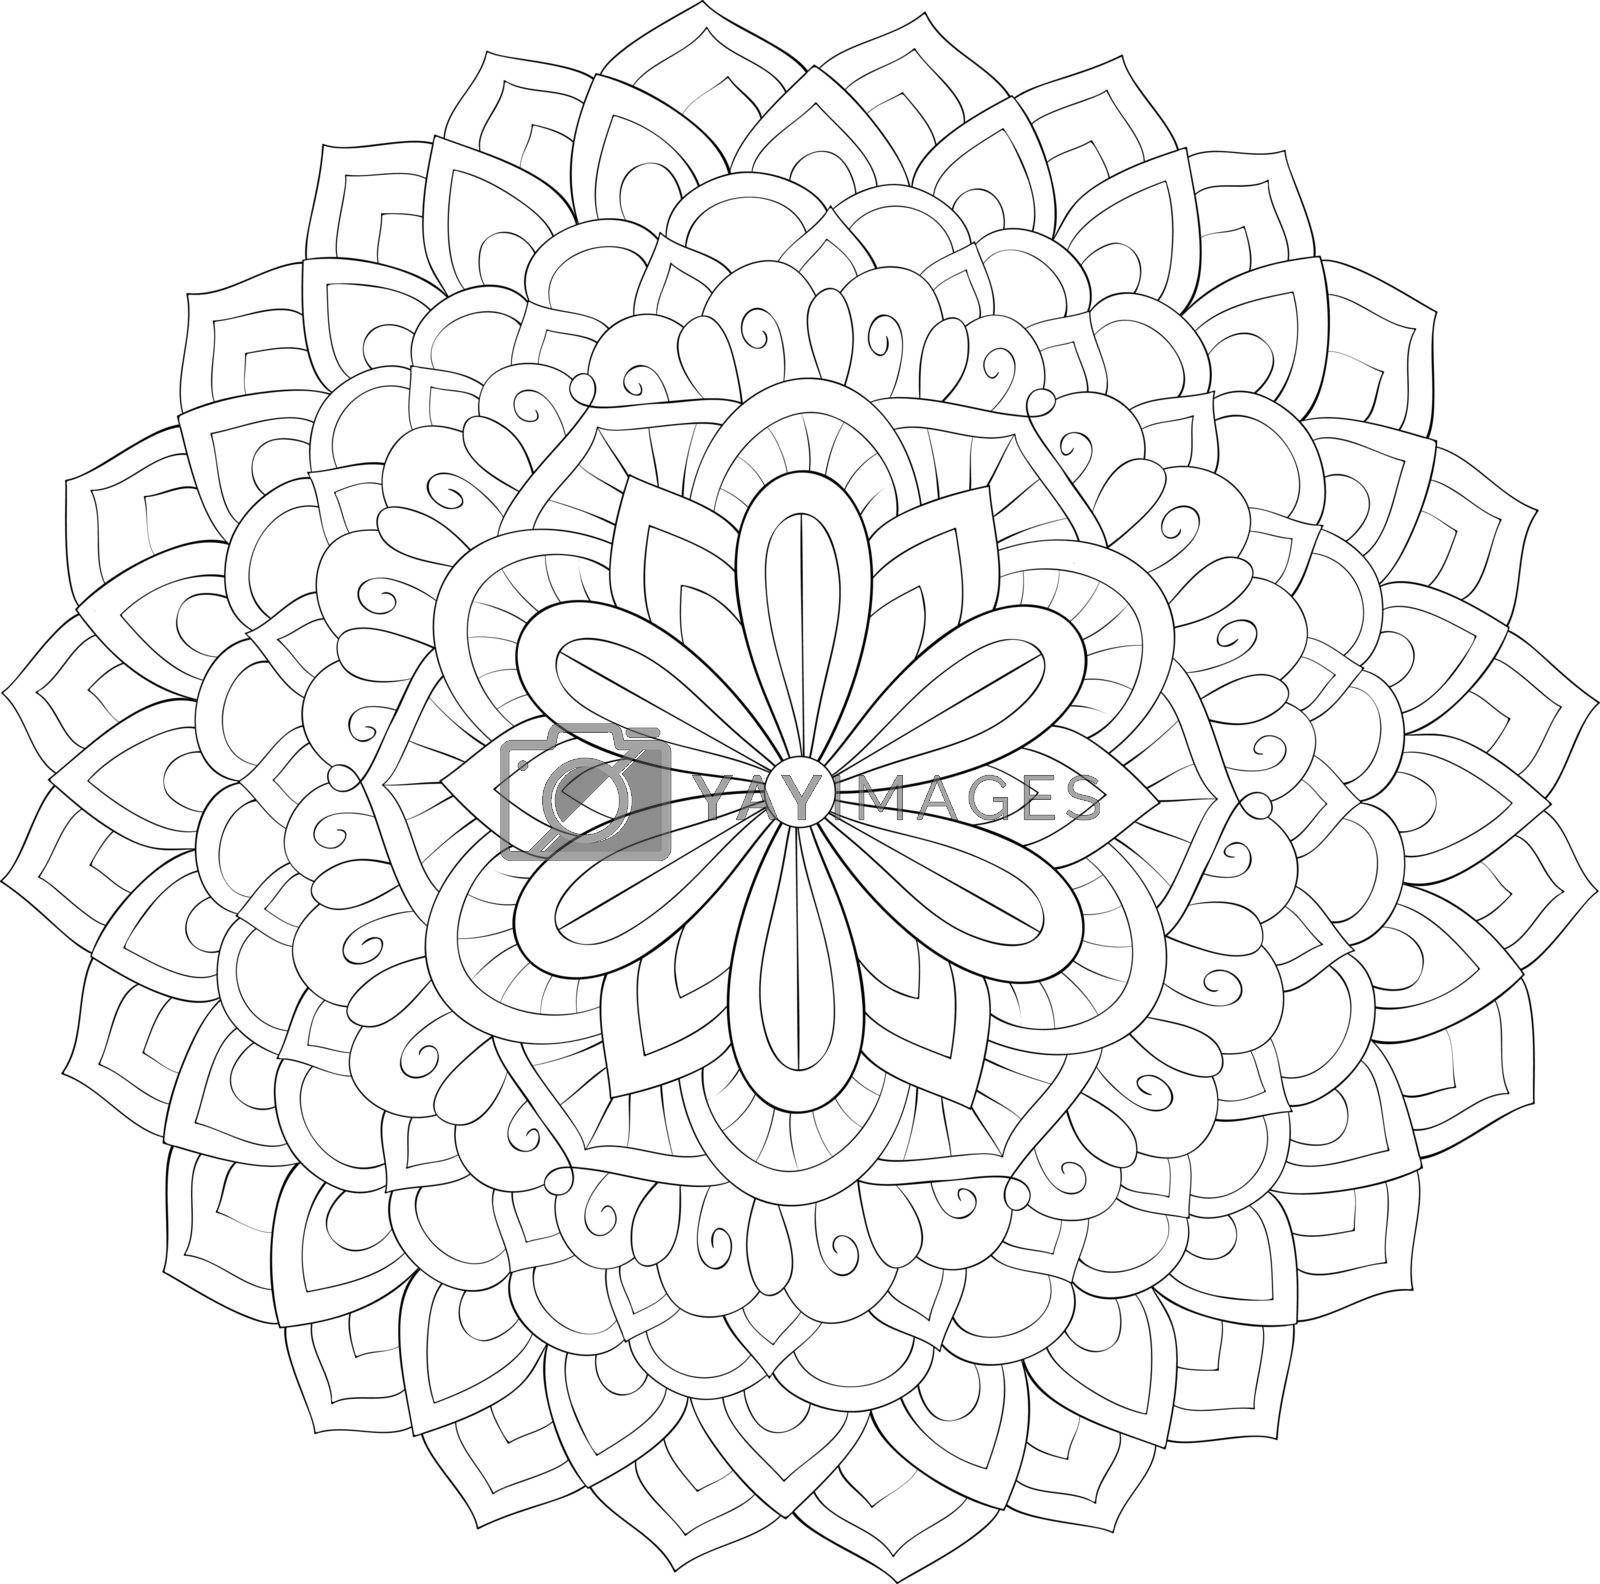 Adult coloring book,page a zen mandala image for relaxing.Line a by Nonuzza